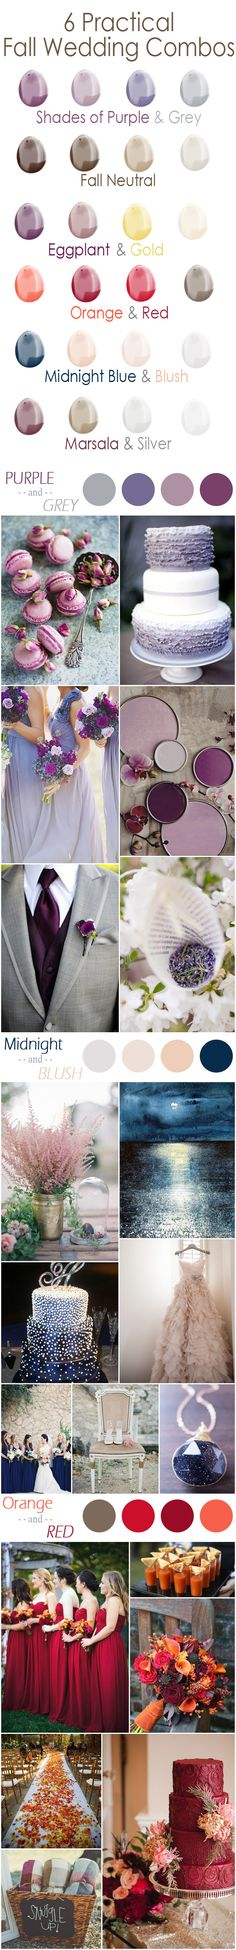 6 Practical Fall Wedding Colors-shades of purple, midnight blue and blush pink, orange and red wedding color ideas